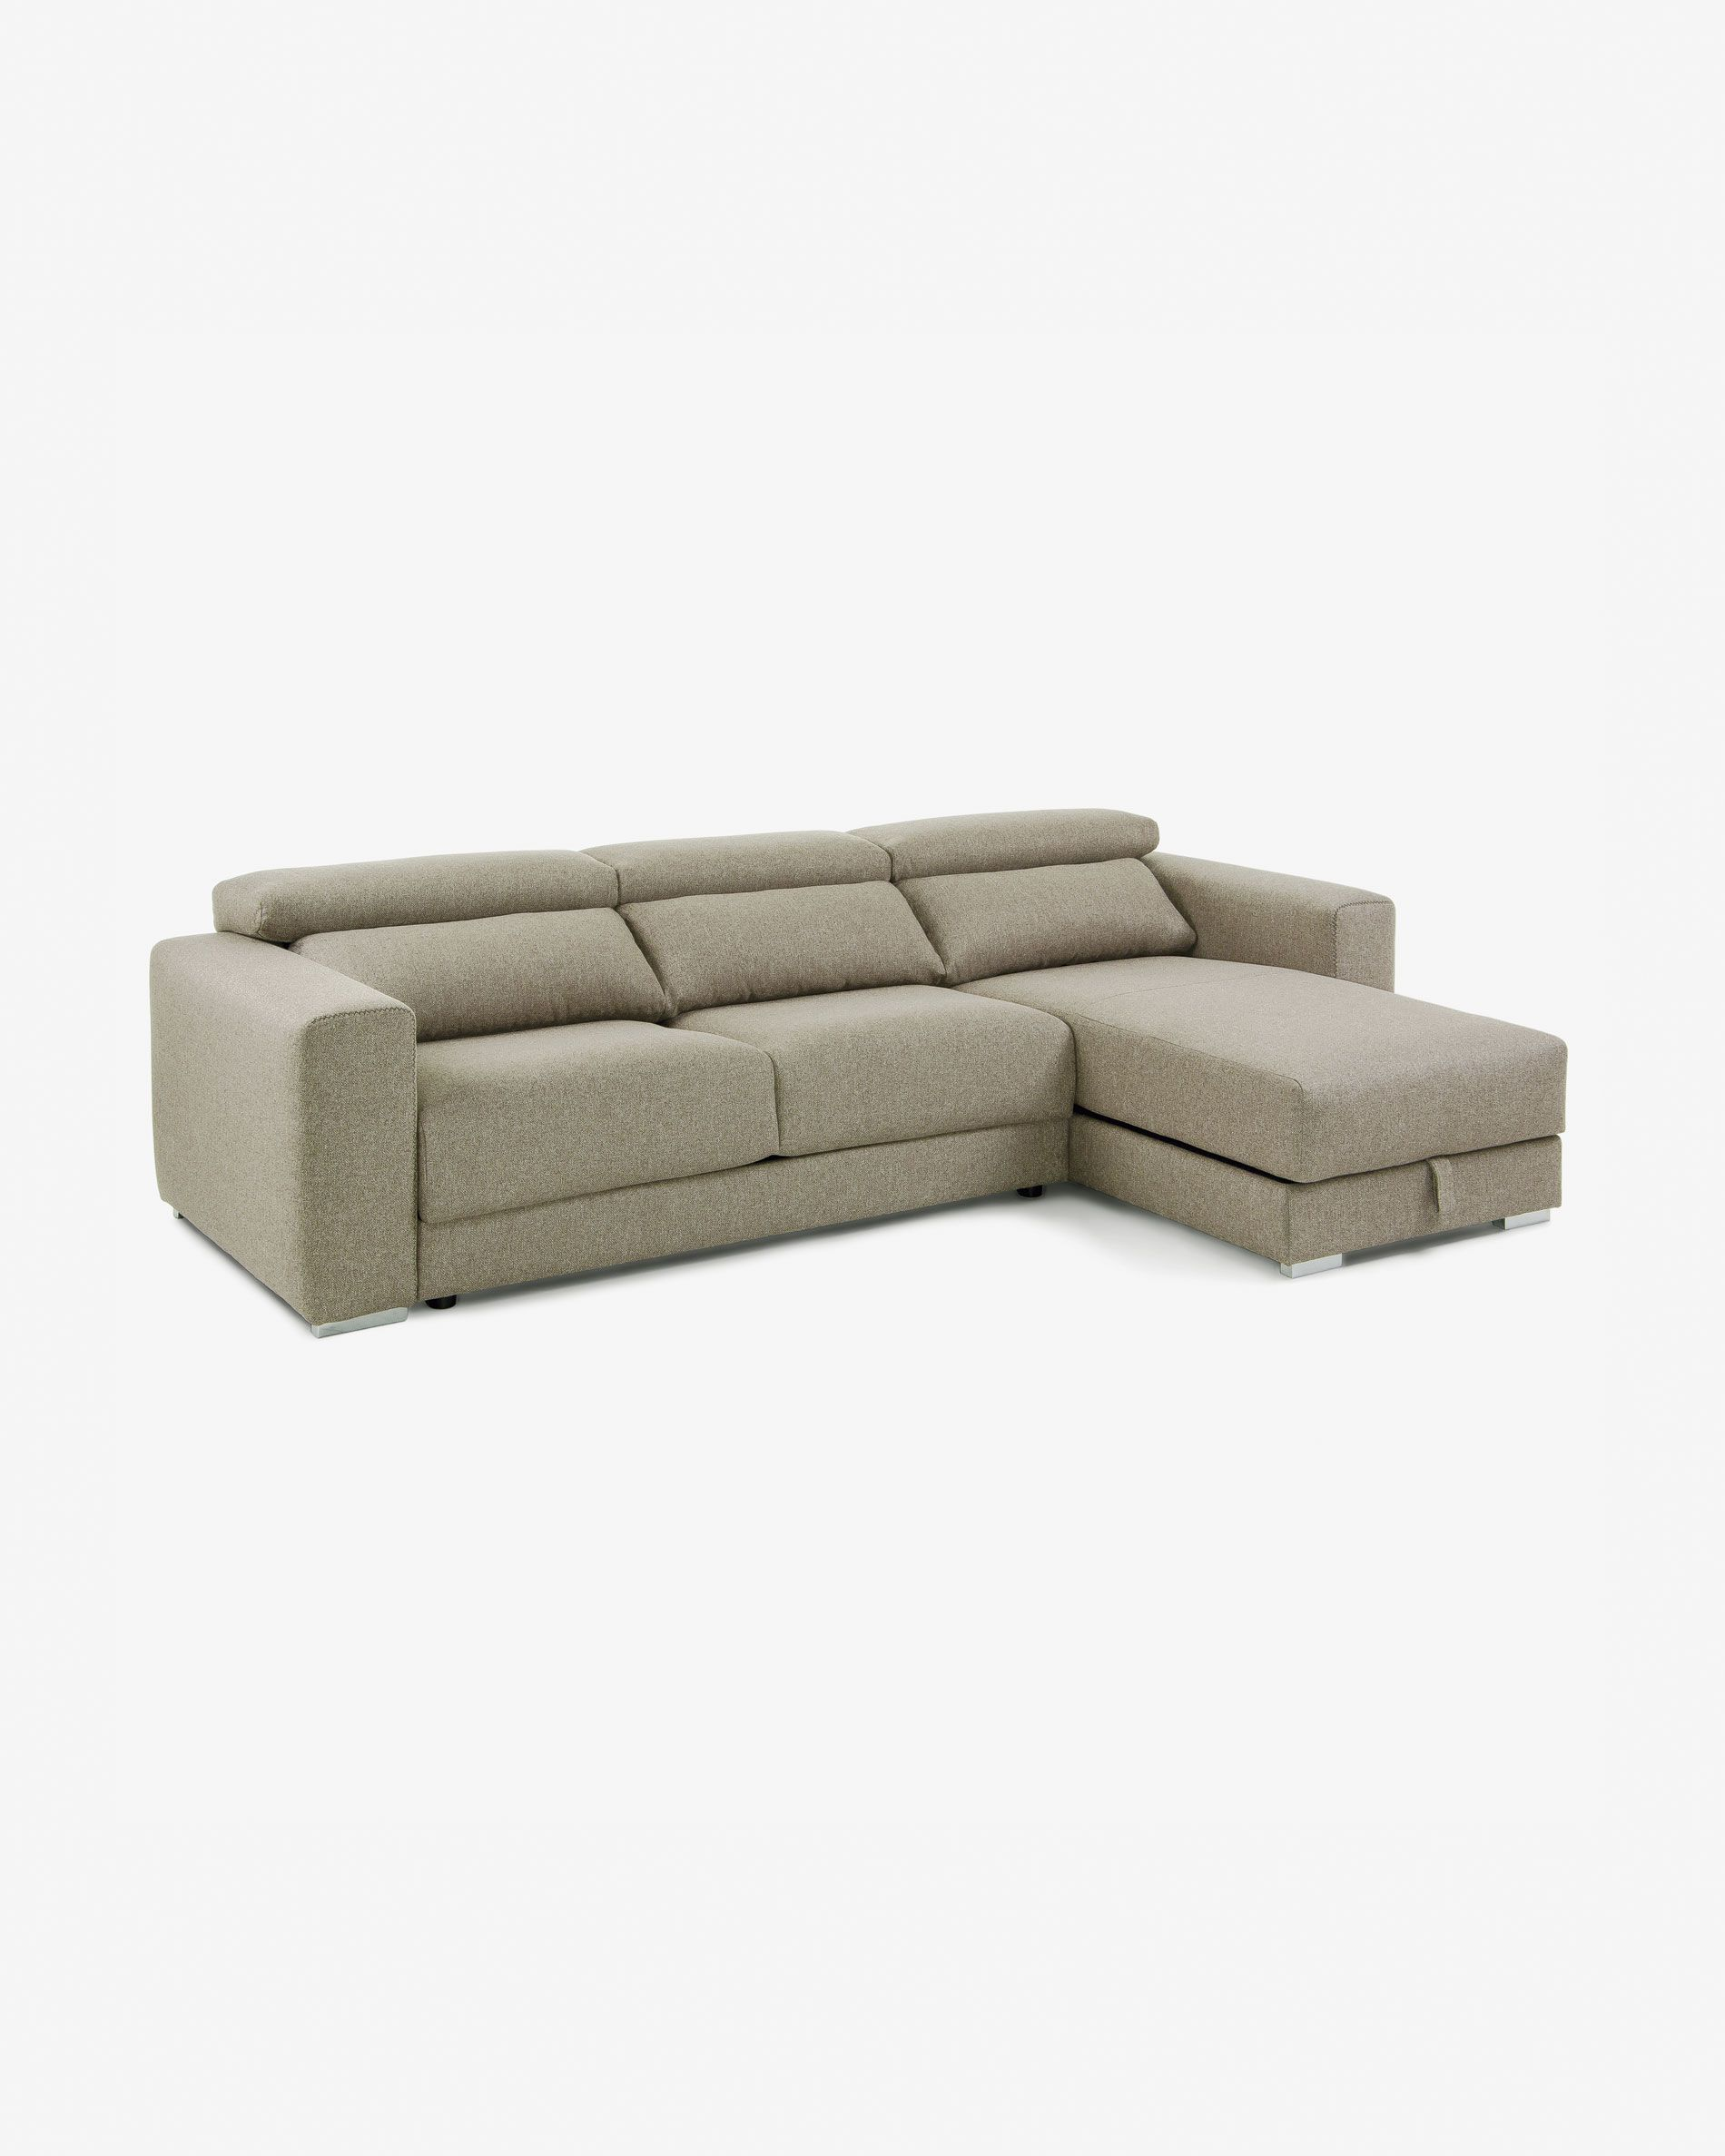 Beige 3 Seater Atlanta Sofa With Chaise